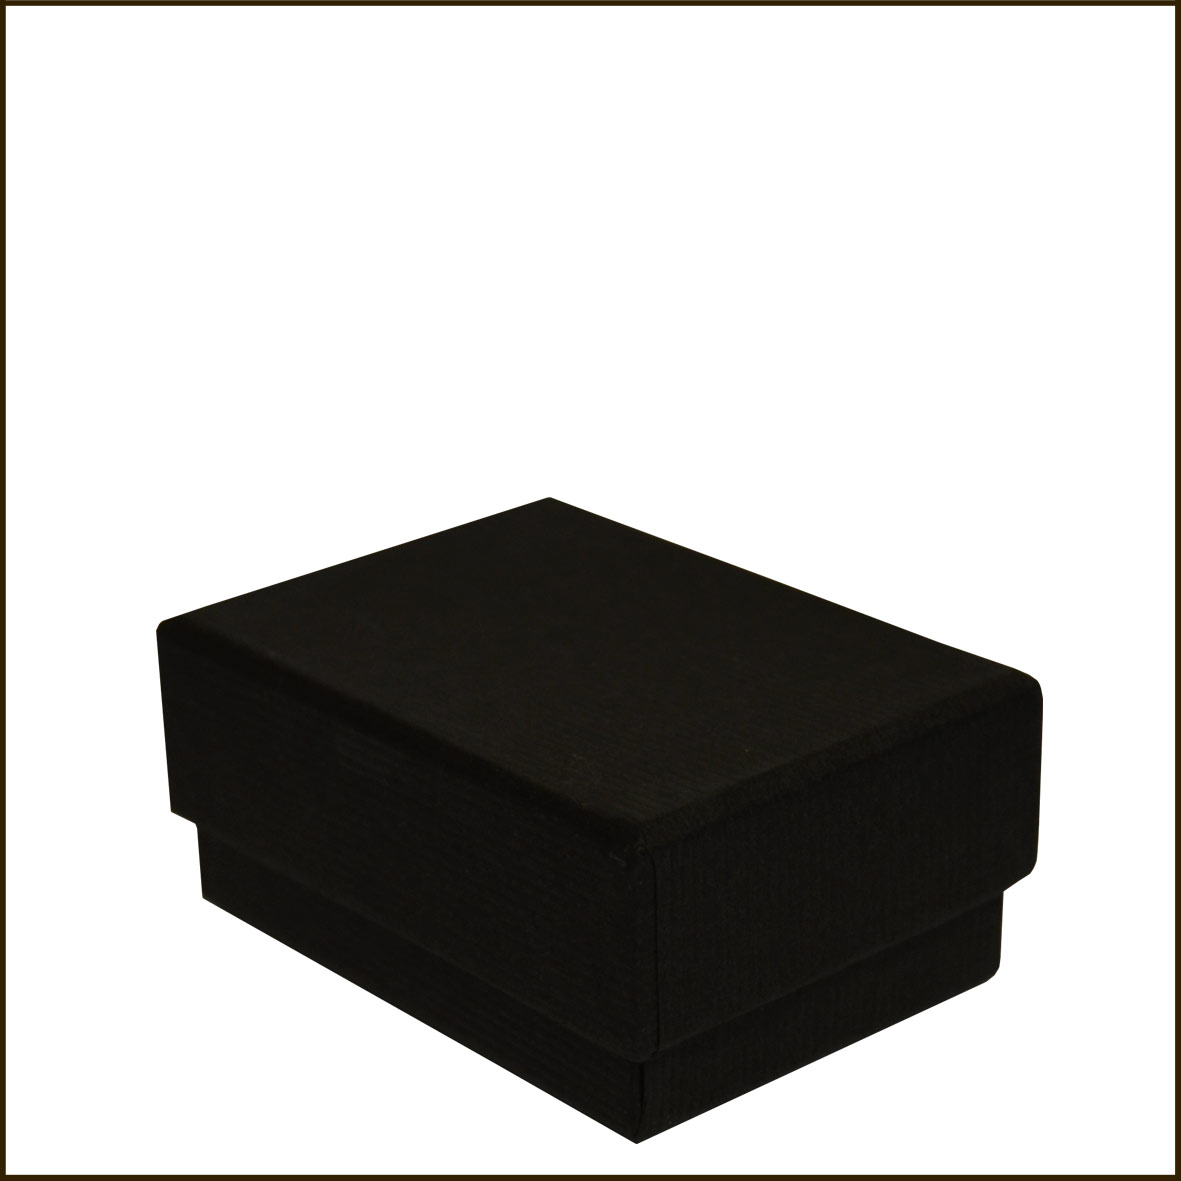 bo te crin noire carton 6 4 cm. Black Bedroom Furniture Sets. Home Design Ideas